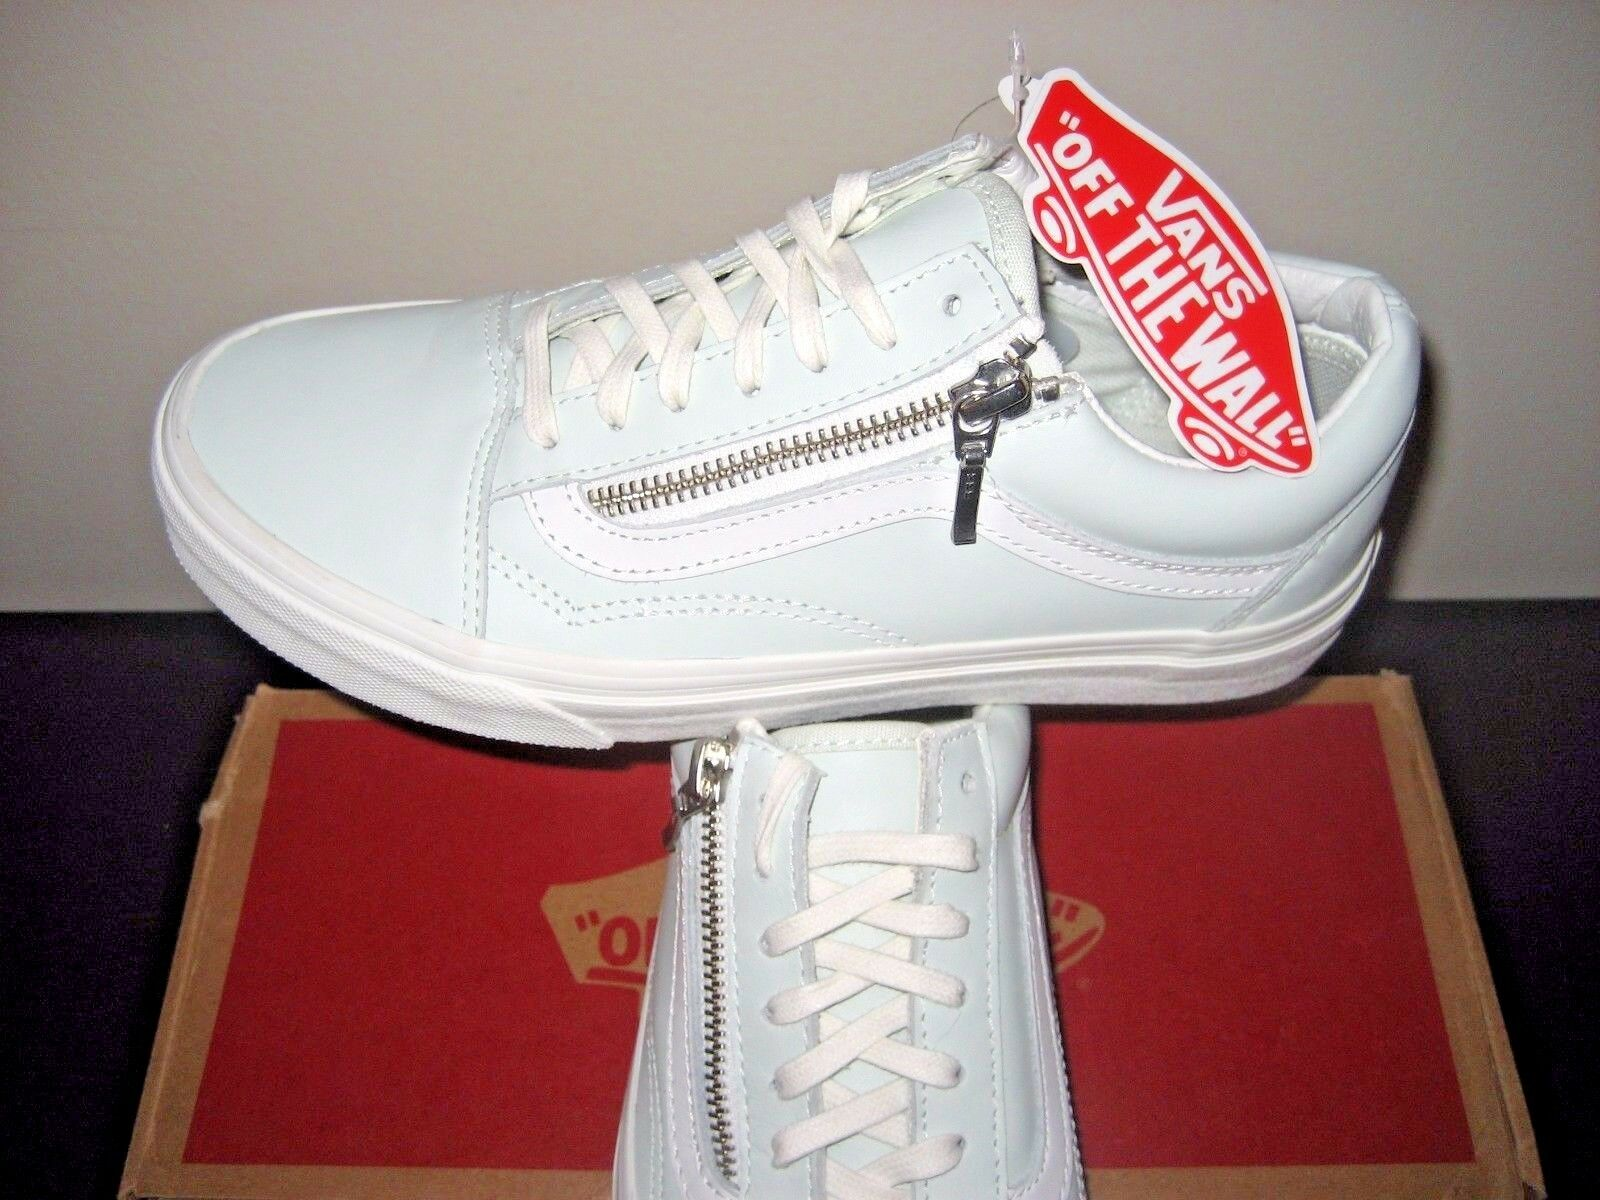 Vans Womens Old Skool Zip Leather Zephyr bluee white De white shoes Size 10 NWT